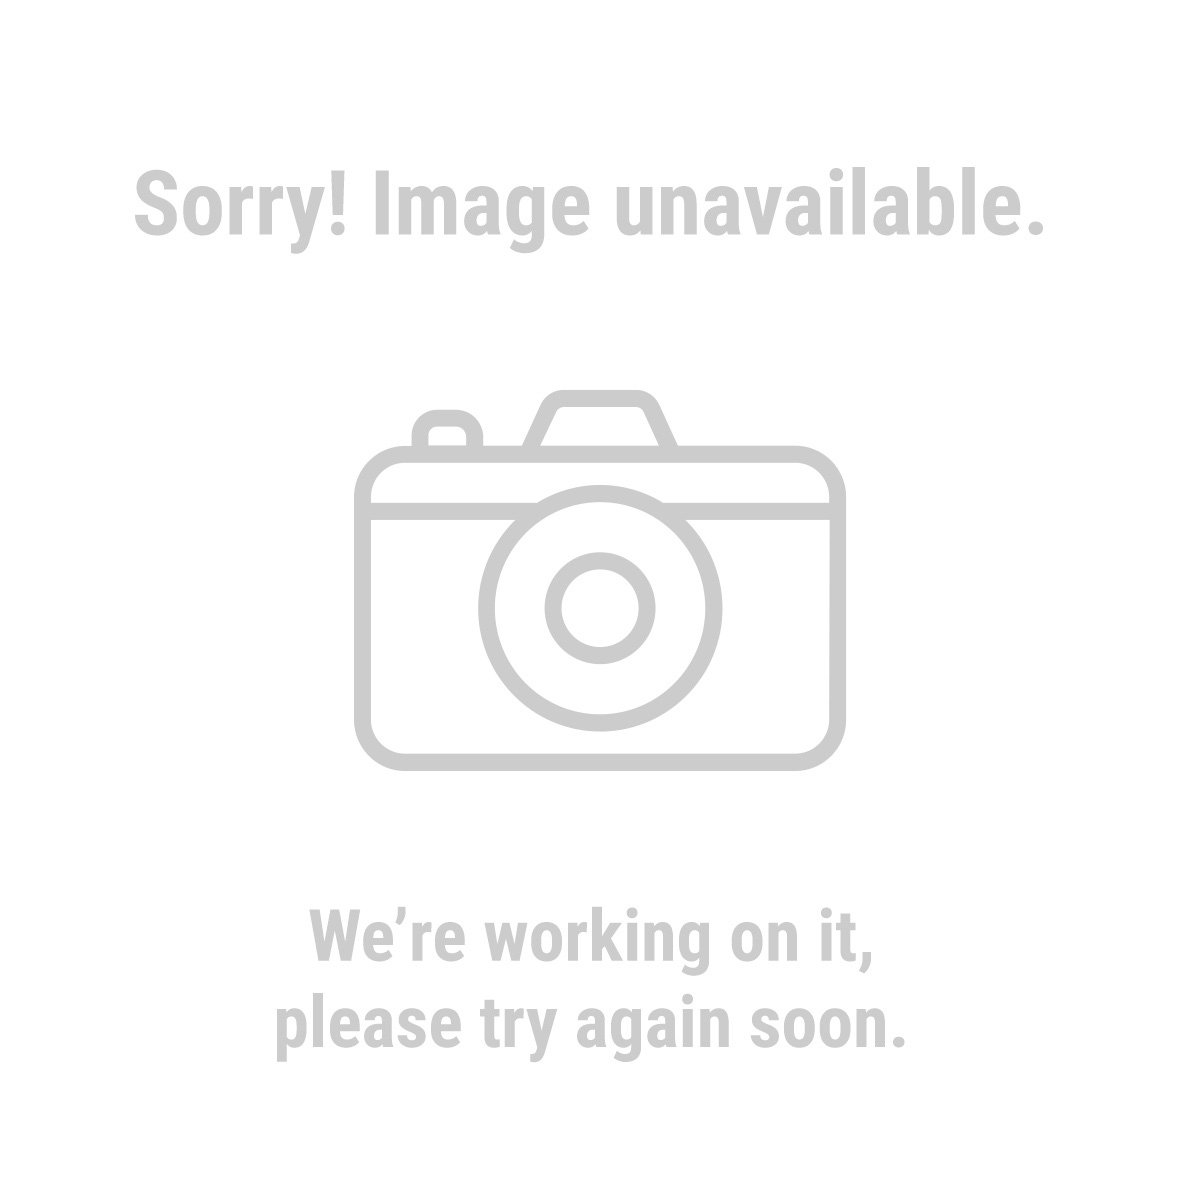 7 Piece Double Grip Screwdriver Set